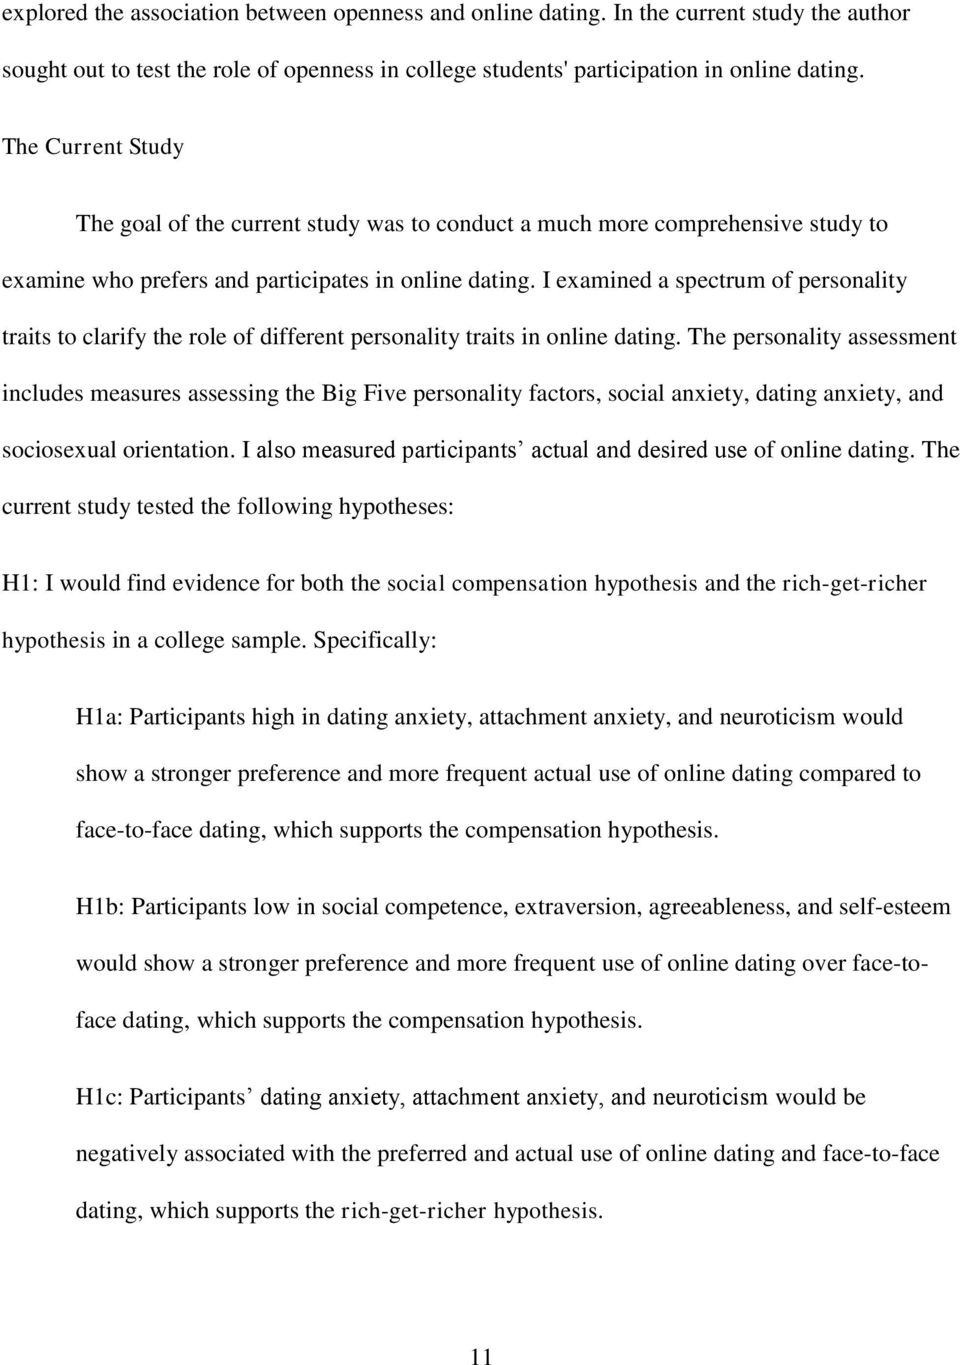 dating personality traits